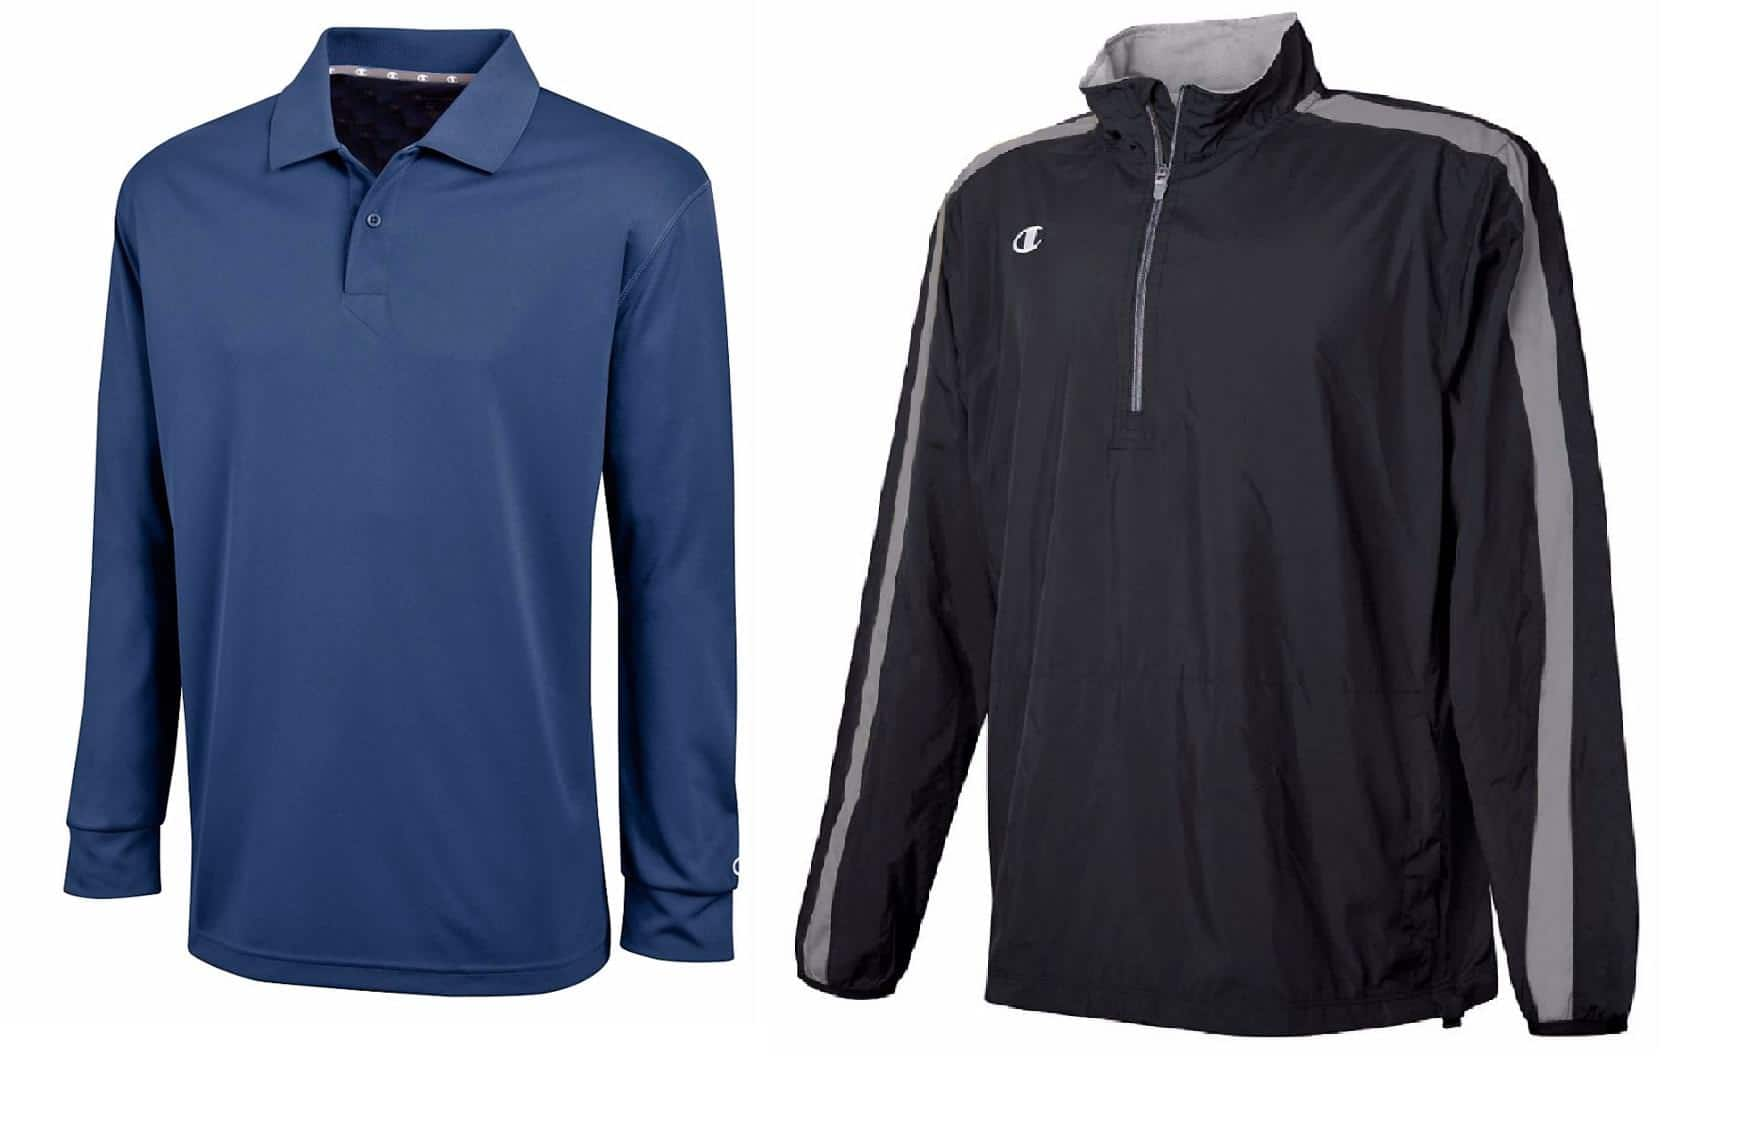 Champion Men's Ultimate Long Sleeve Polo + Quarter Zip Athletic Pullover Shirt $20 + free shipping (new without tags)